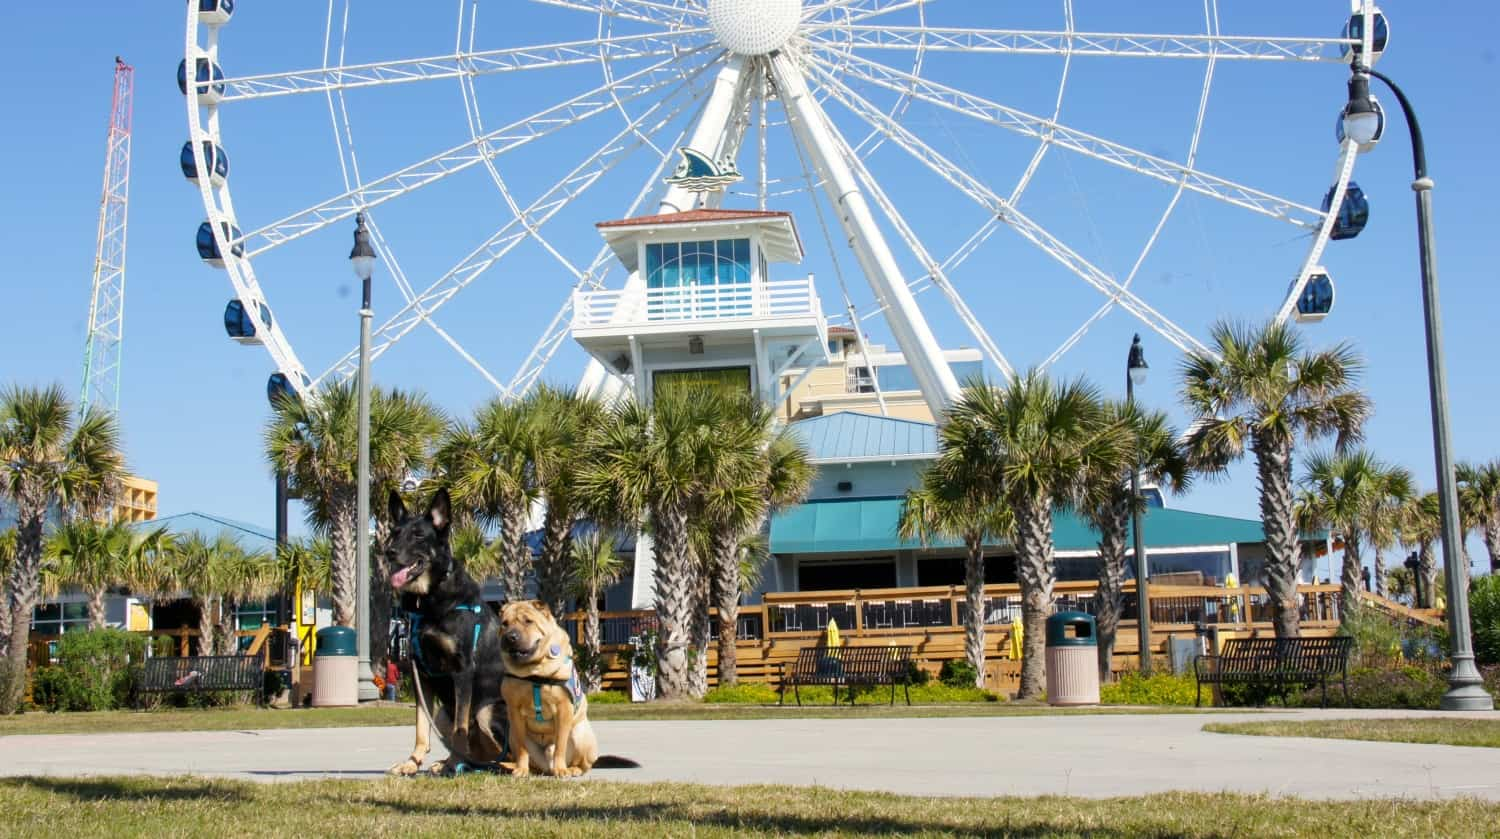 Buster and Ty - Myrtle Beach, SC